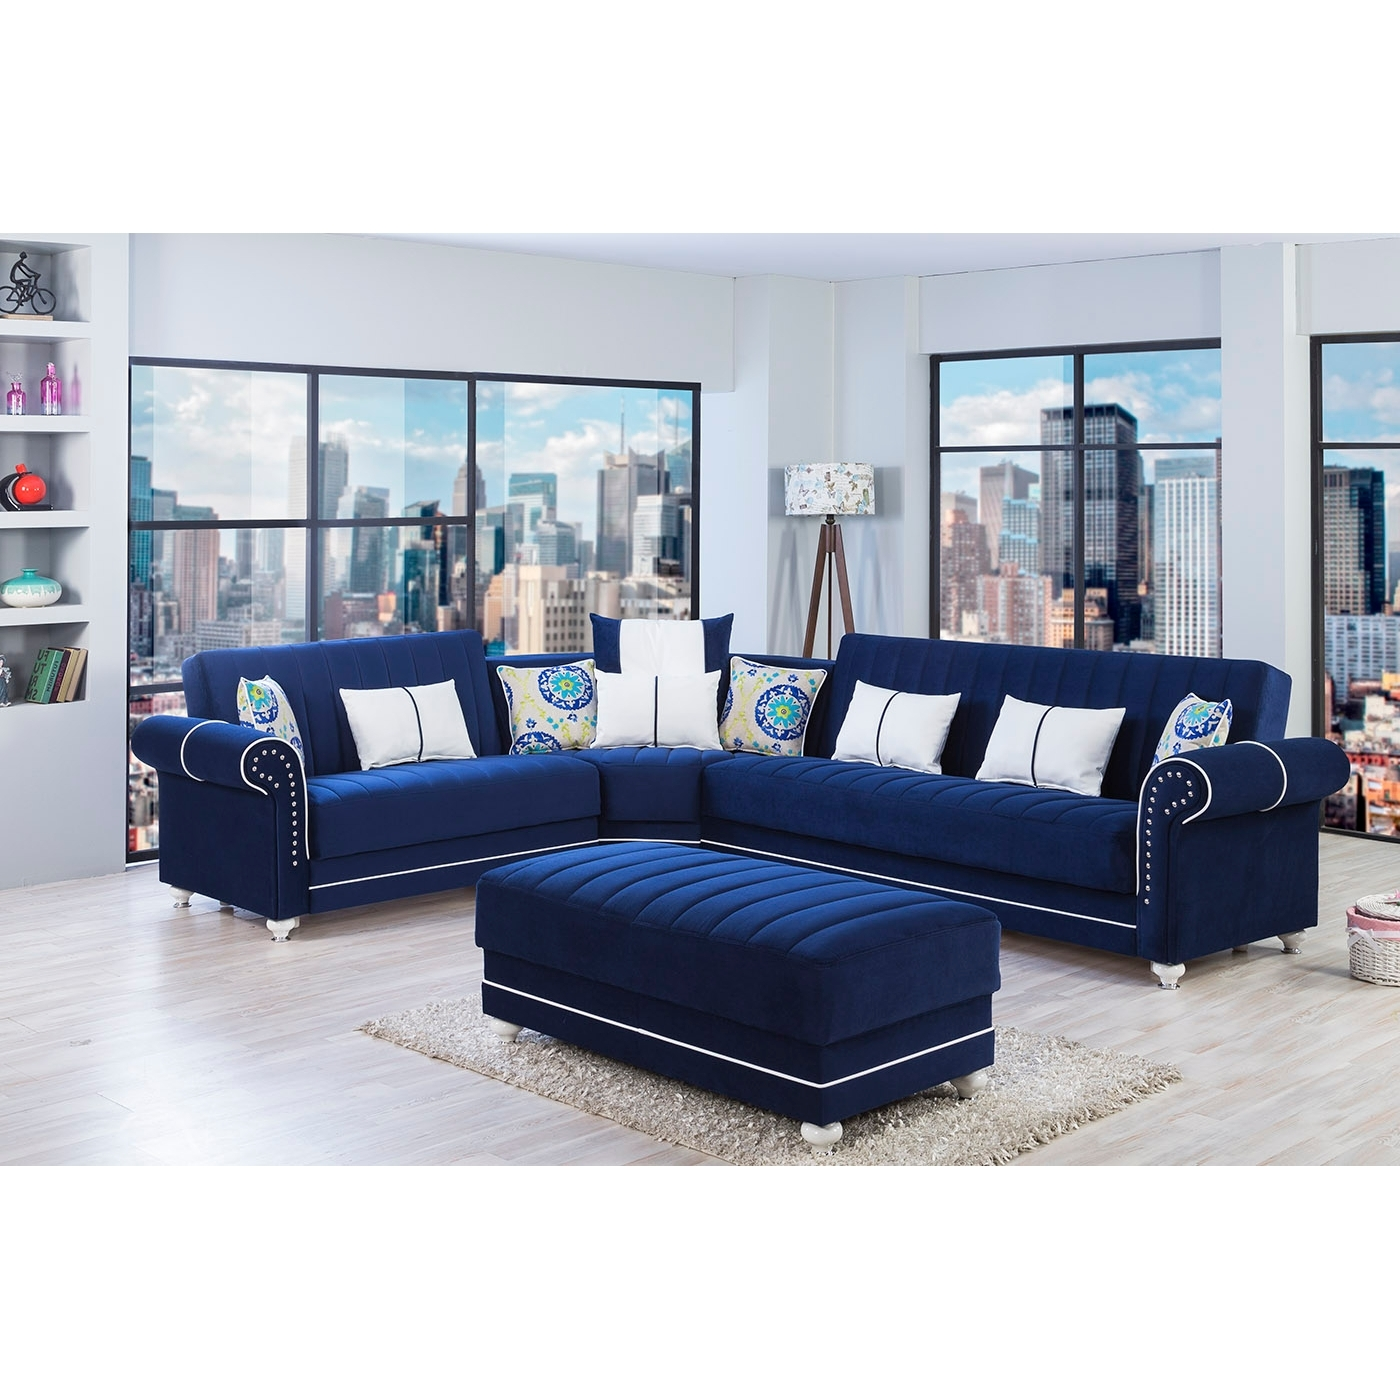 Most Popular Furniture :: Functional Sectionals :: Royal Home Sectional Riva Pertaining To Royal Furniture Sectional Sofas (View 6 of 15)